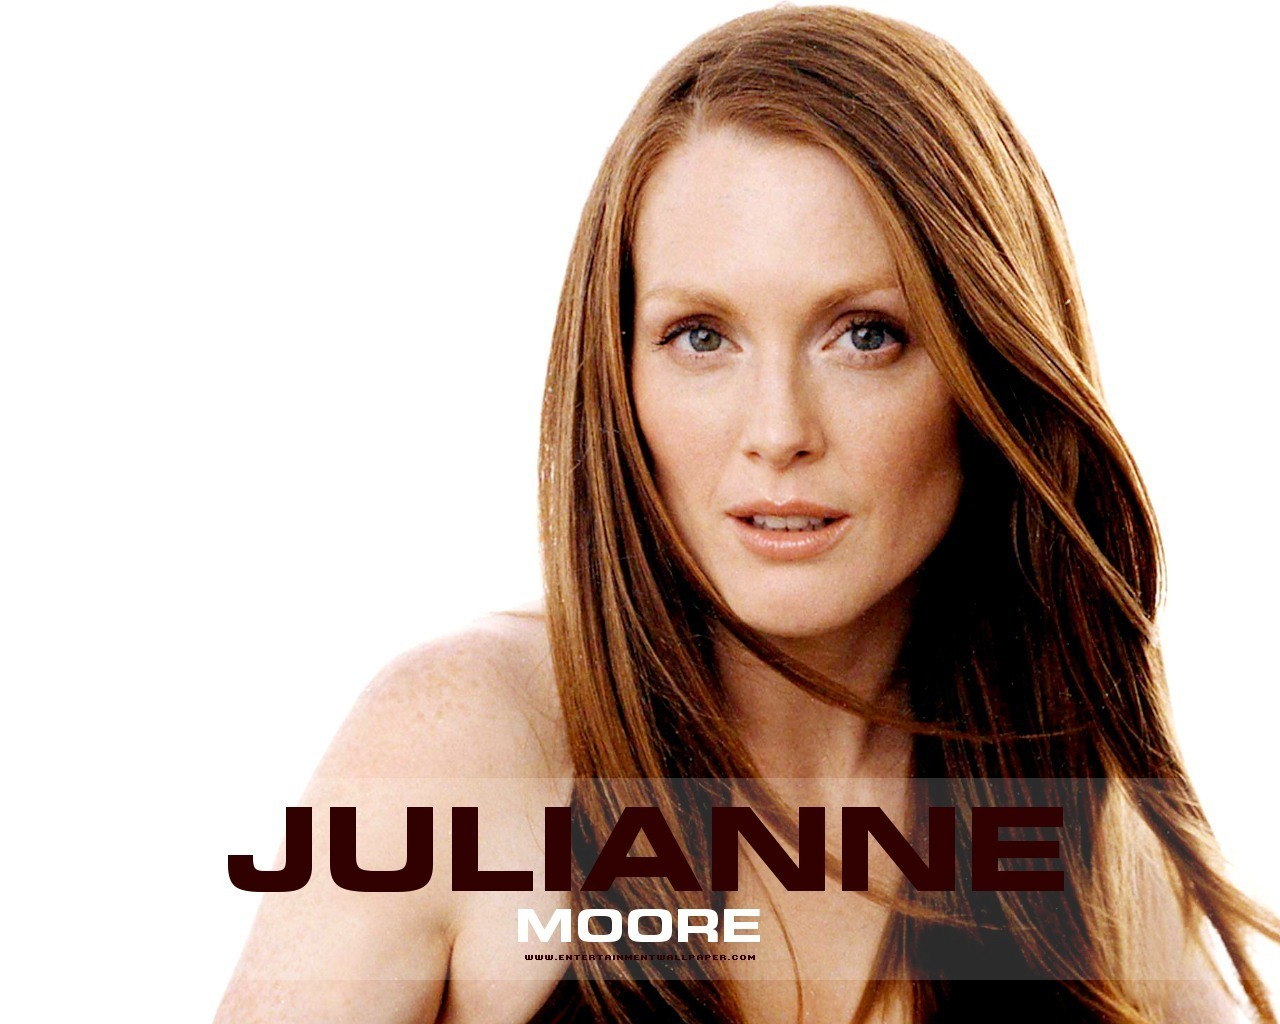 Julianne Moore - Images Gallery